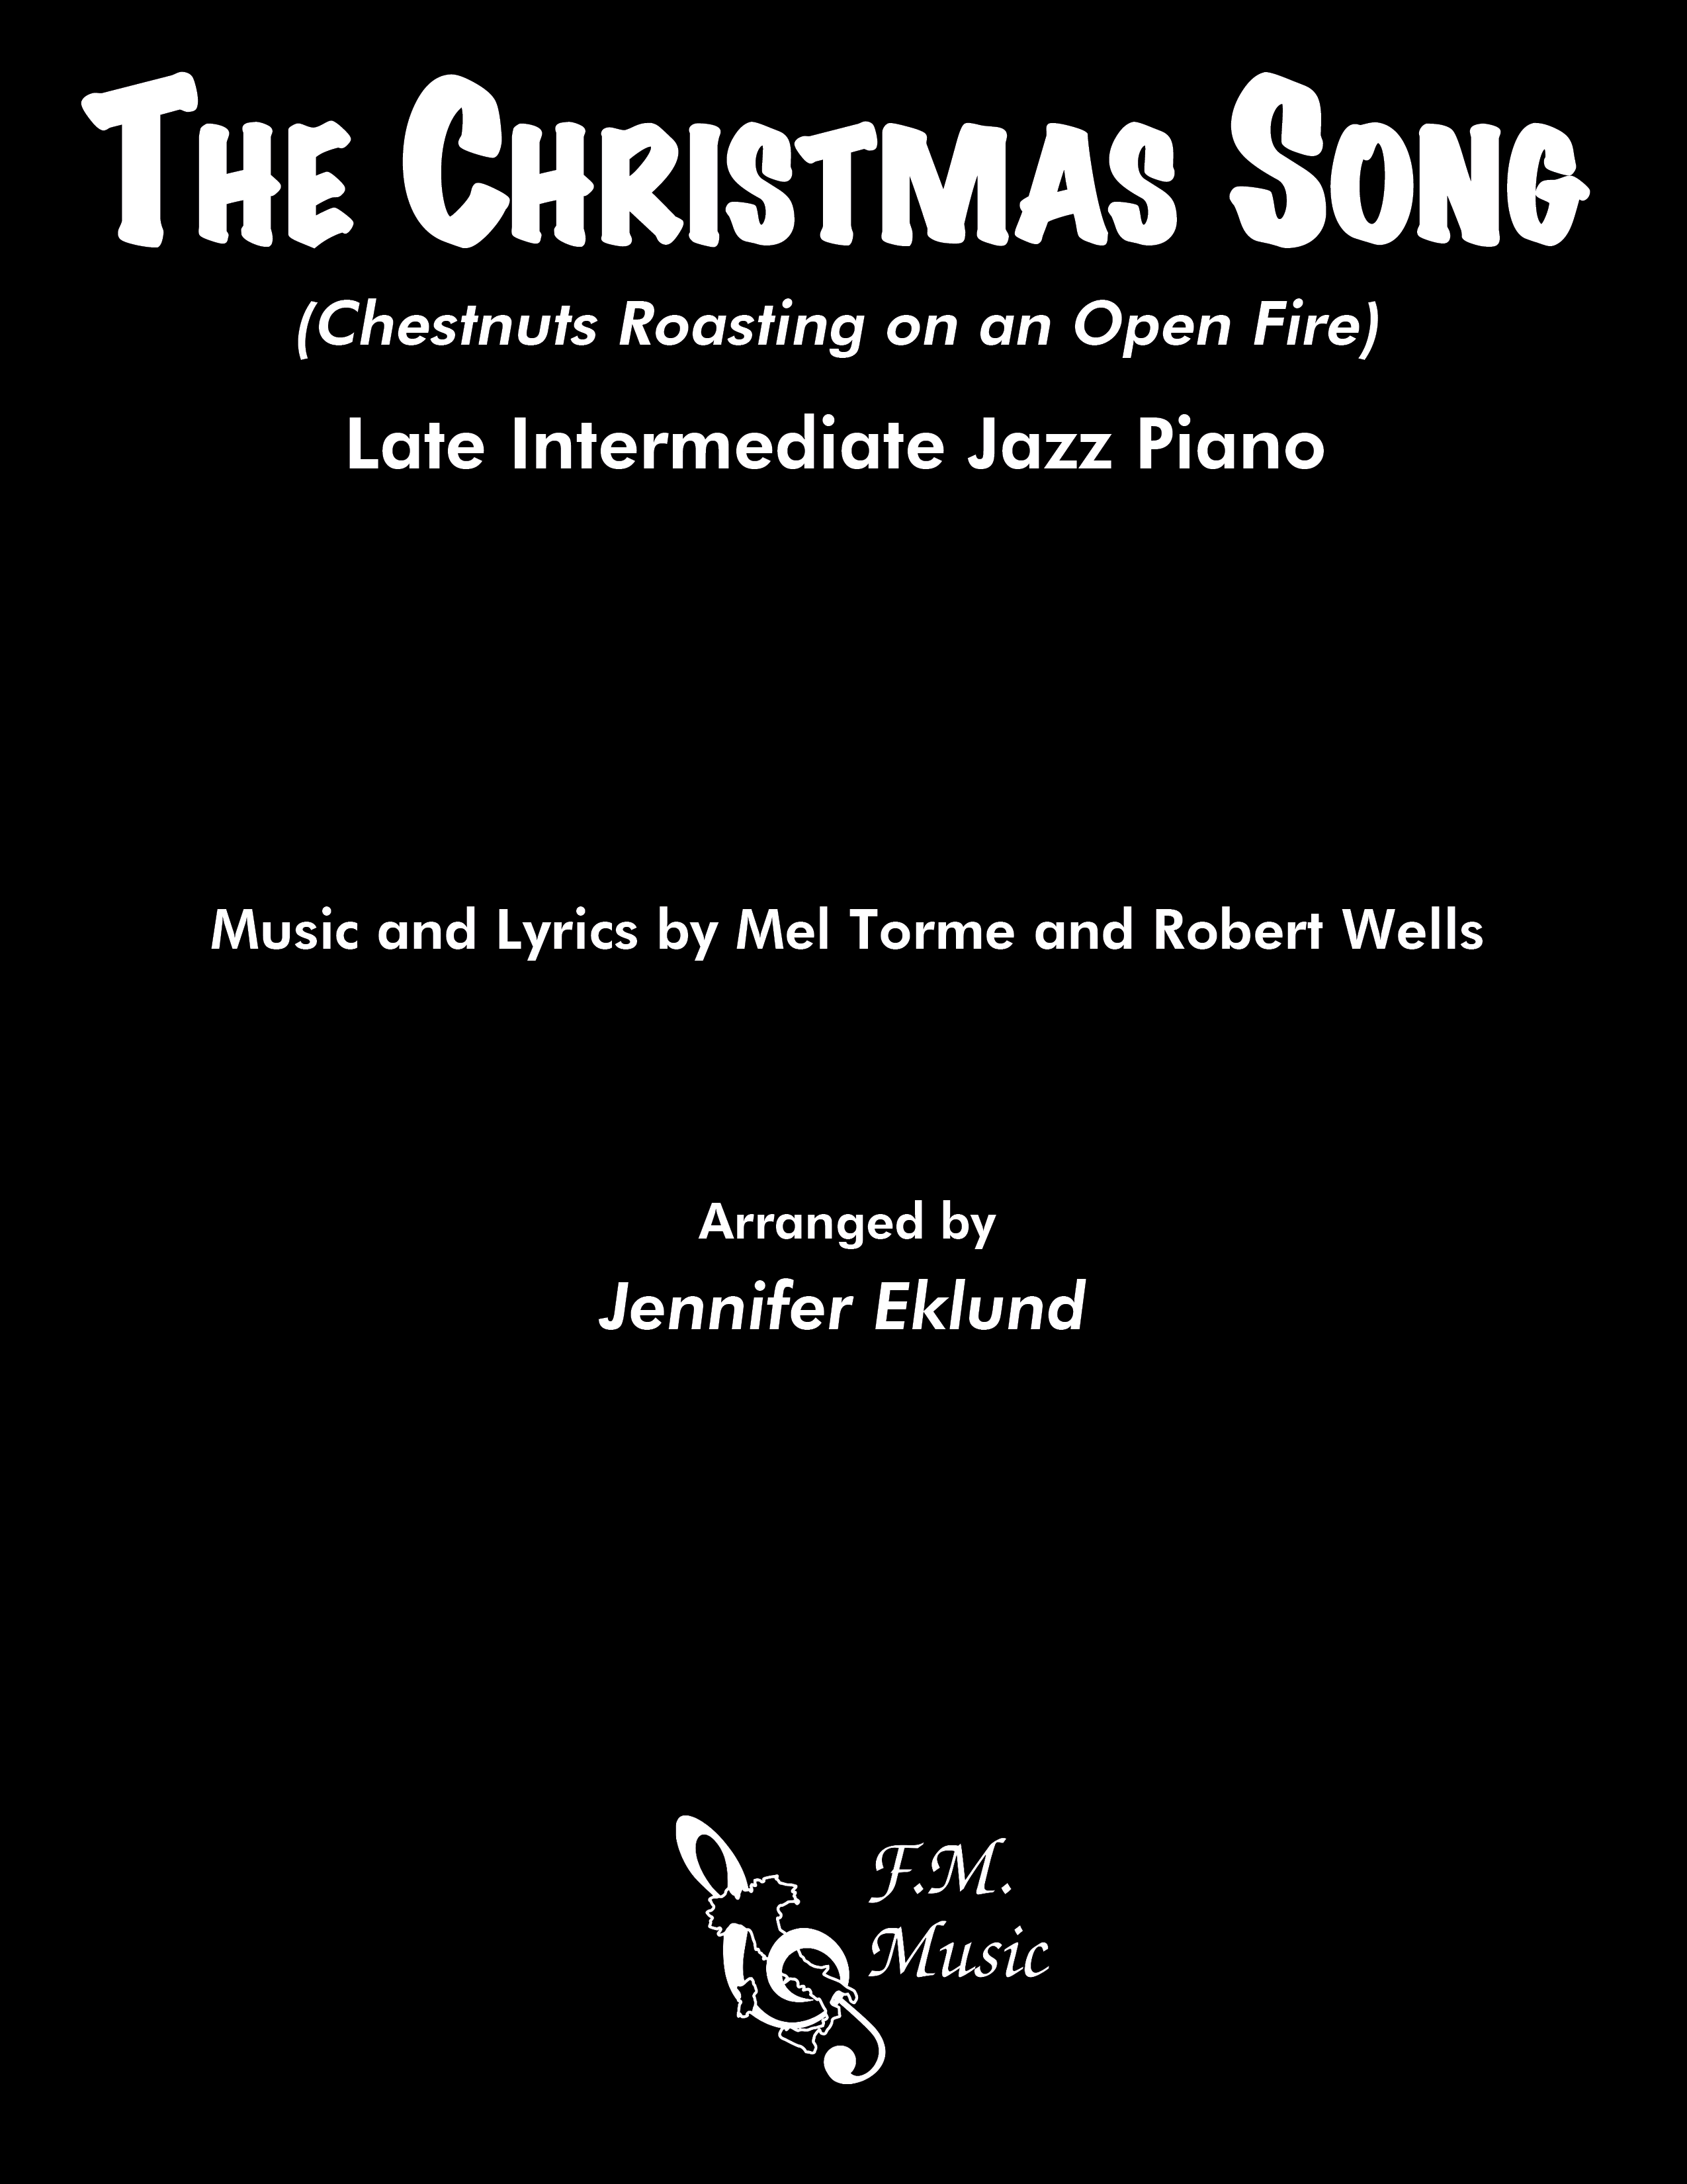 The Christmas Song (Chestnuts Roasting On An Open Fire) - Late Intermediate Jazz Piano